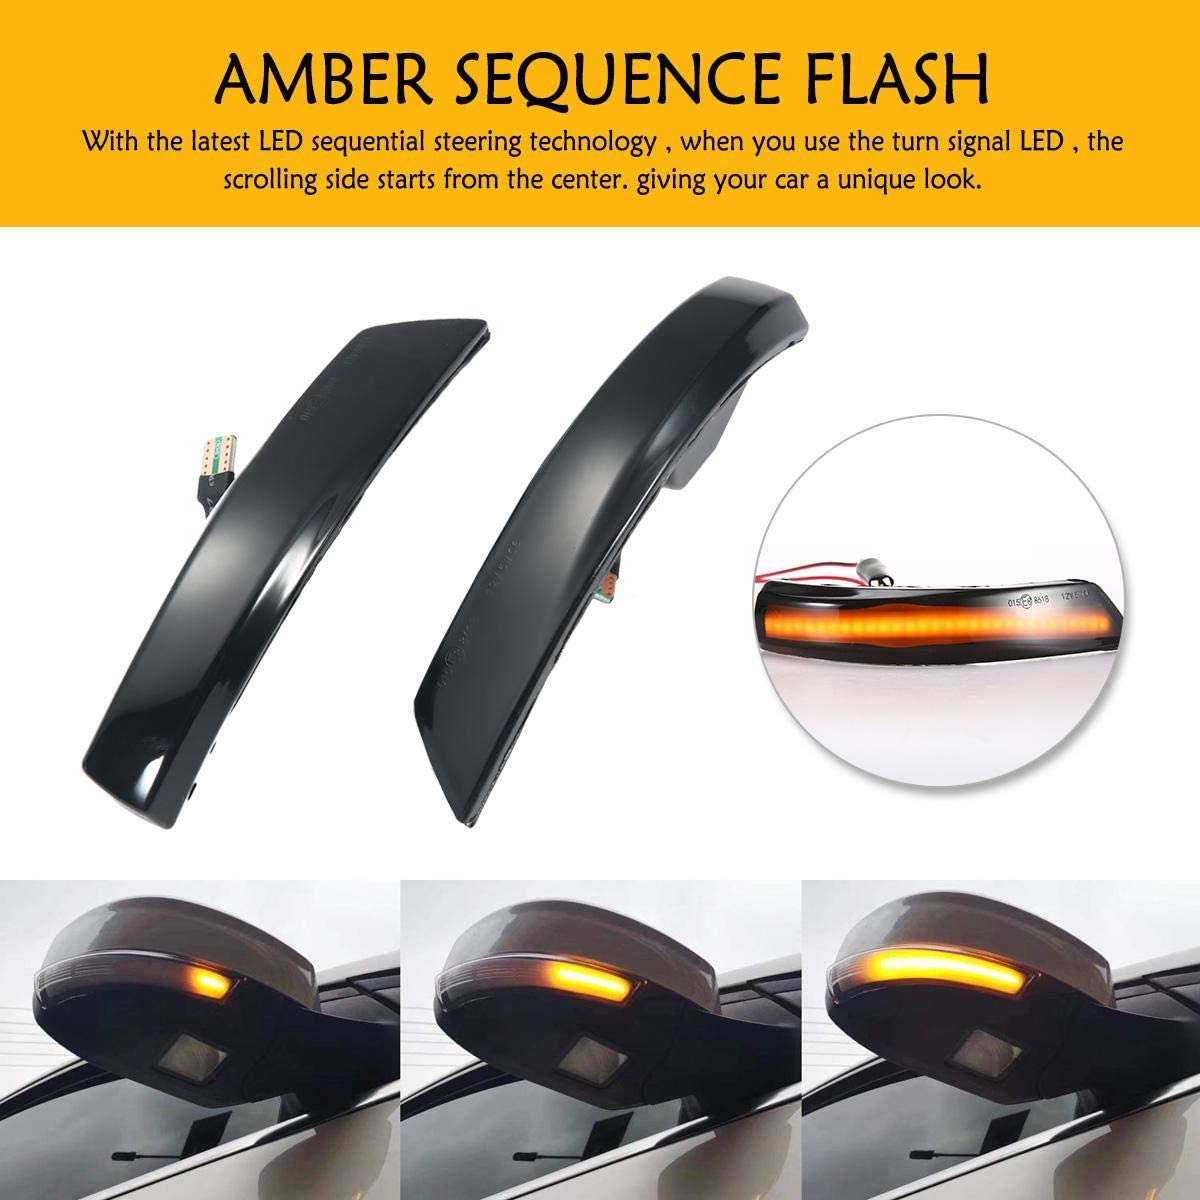 MOGOI Dynamisches sequentielles Blinken Rauchglas-LED Design f/ür flie/ßendes Wasser Kuga Blinkerlichtleiste f/ür Seitenspiegel f/ür Ford Focus 2012-2018,Ford Escape 2013-2019,Ford C-Max 2015-2018